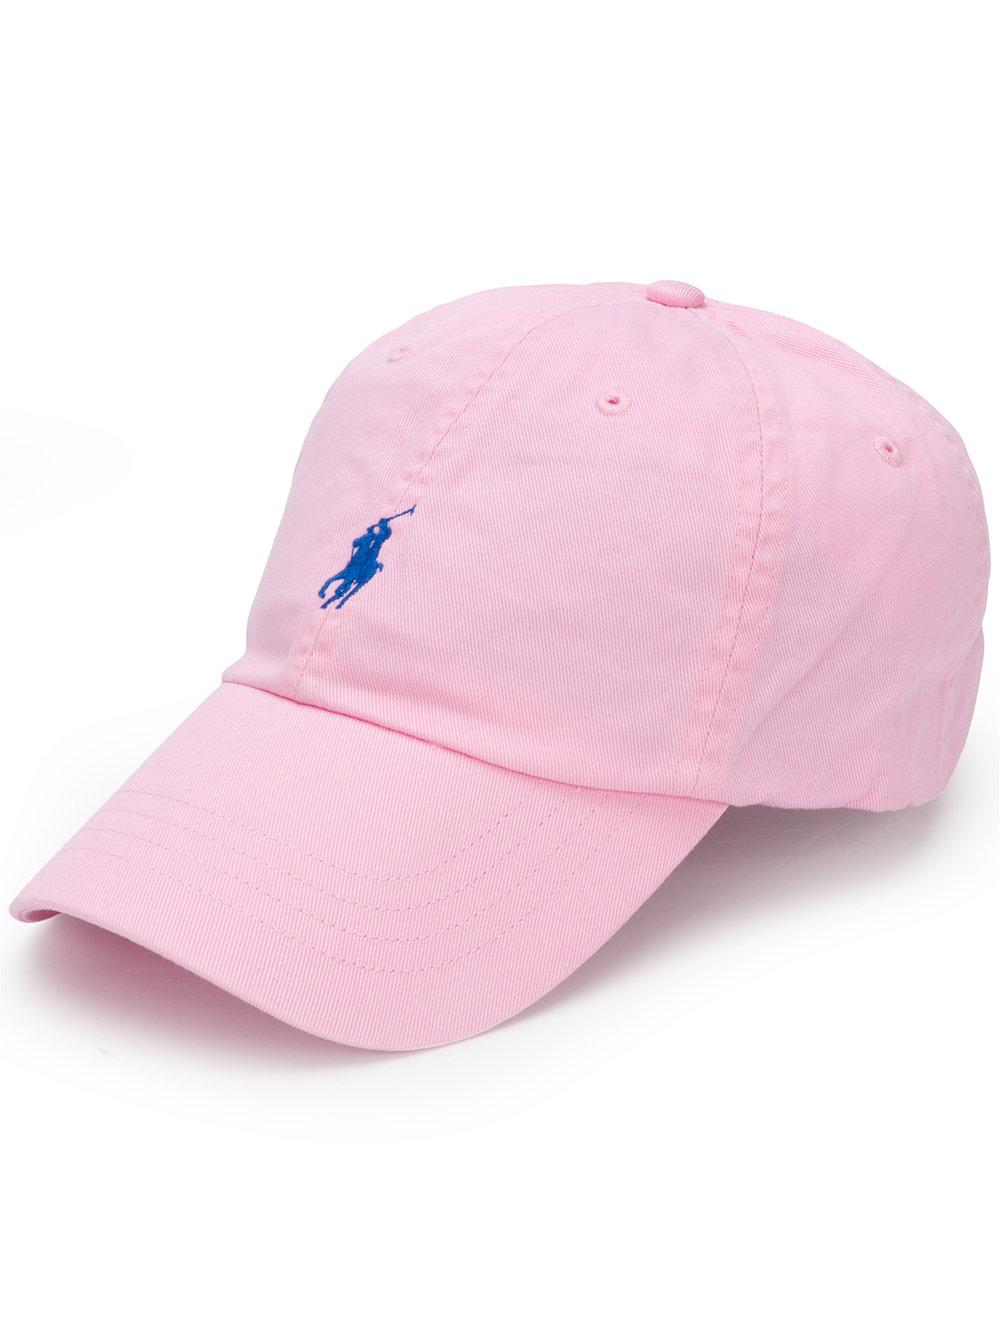 01479af1ad5b2 Polo Ralph Lauren Cotton Baseball Hat in Pink for Men - Lyst